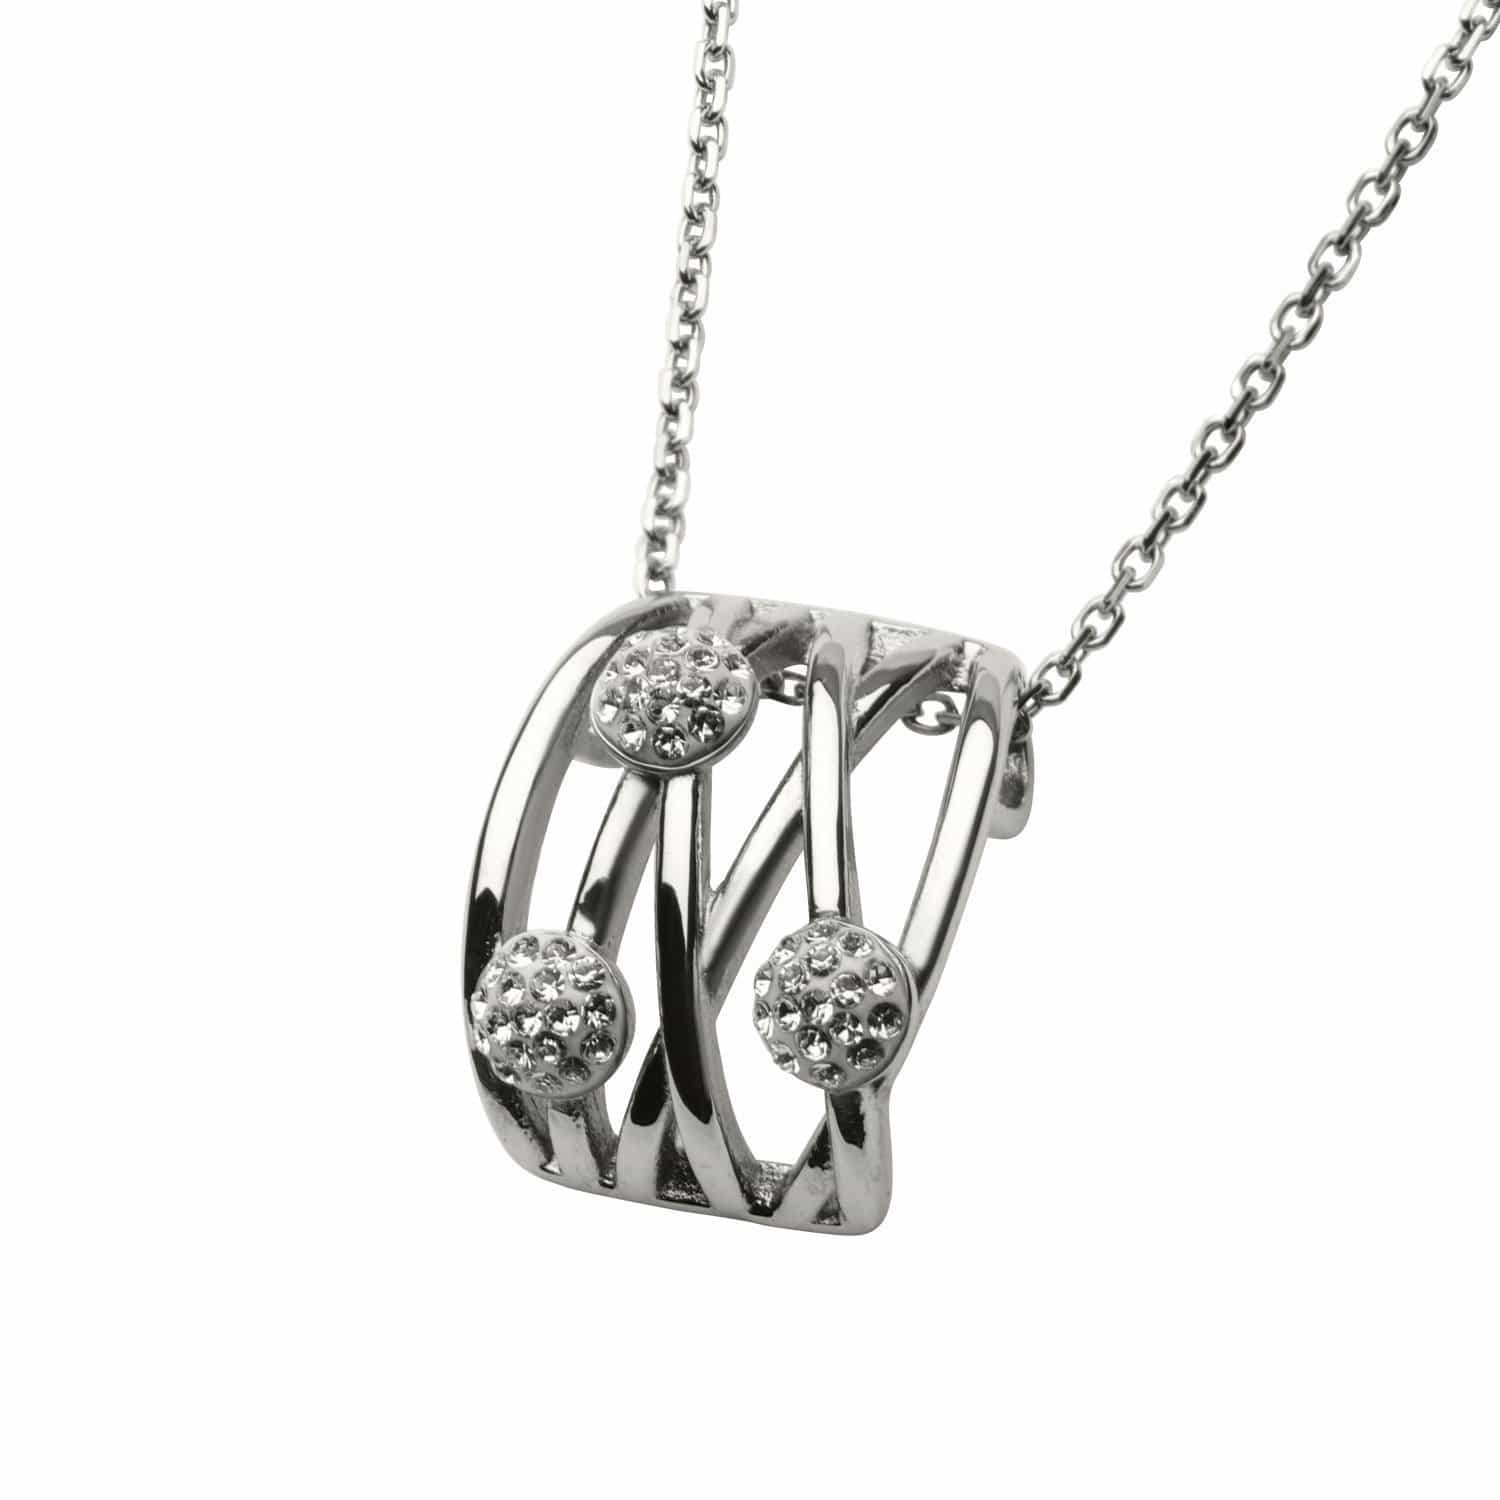 Silver Stainless Steel Sophisticated Crystal Pendant Pendants